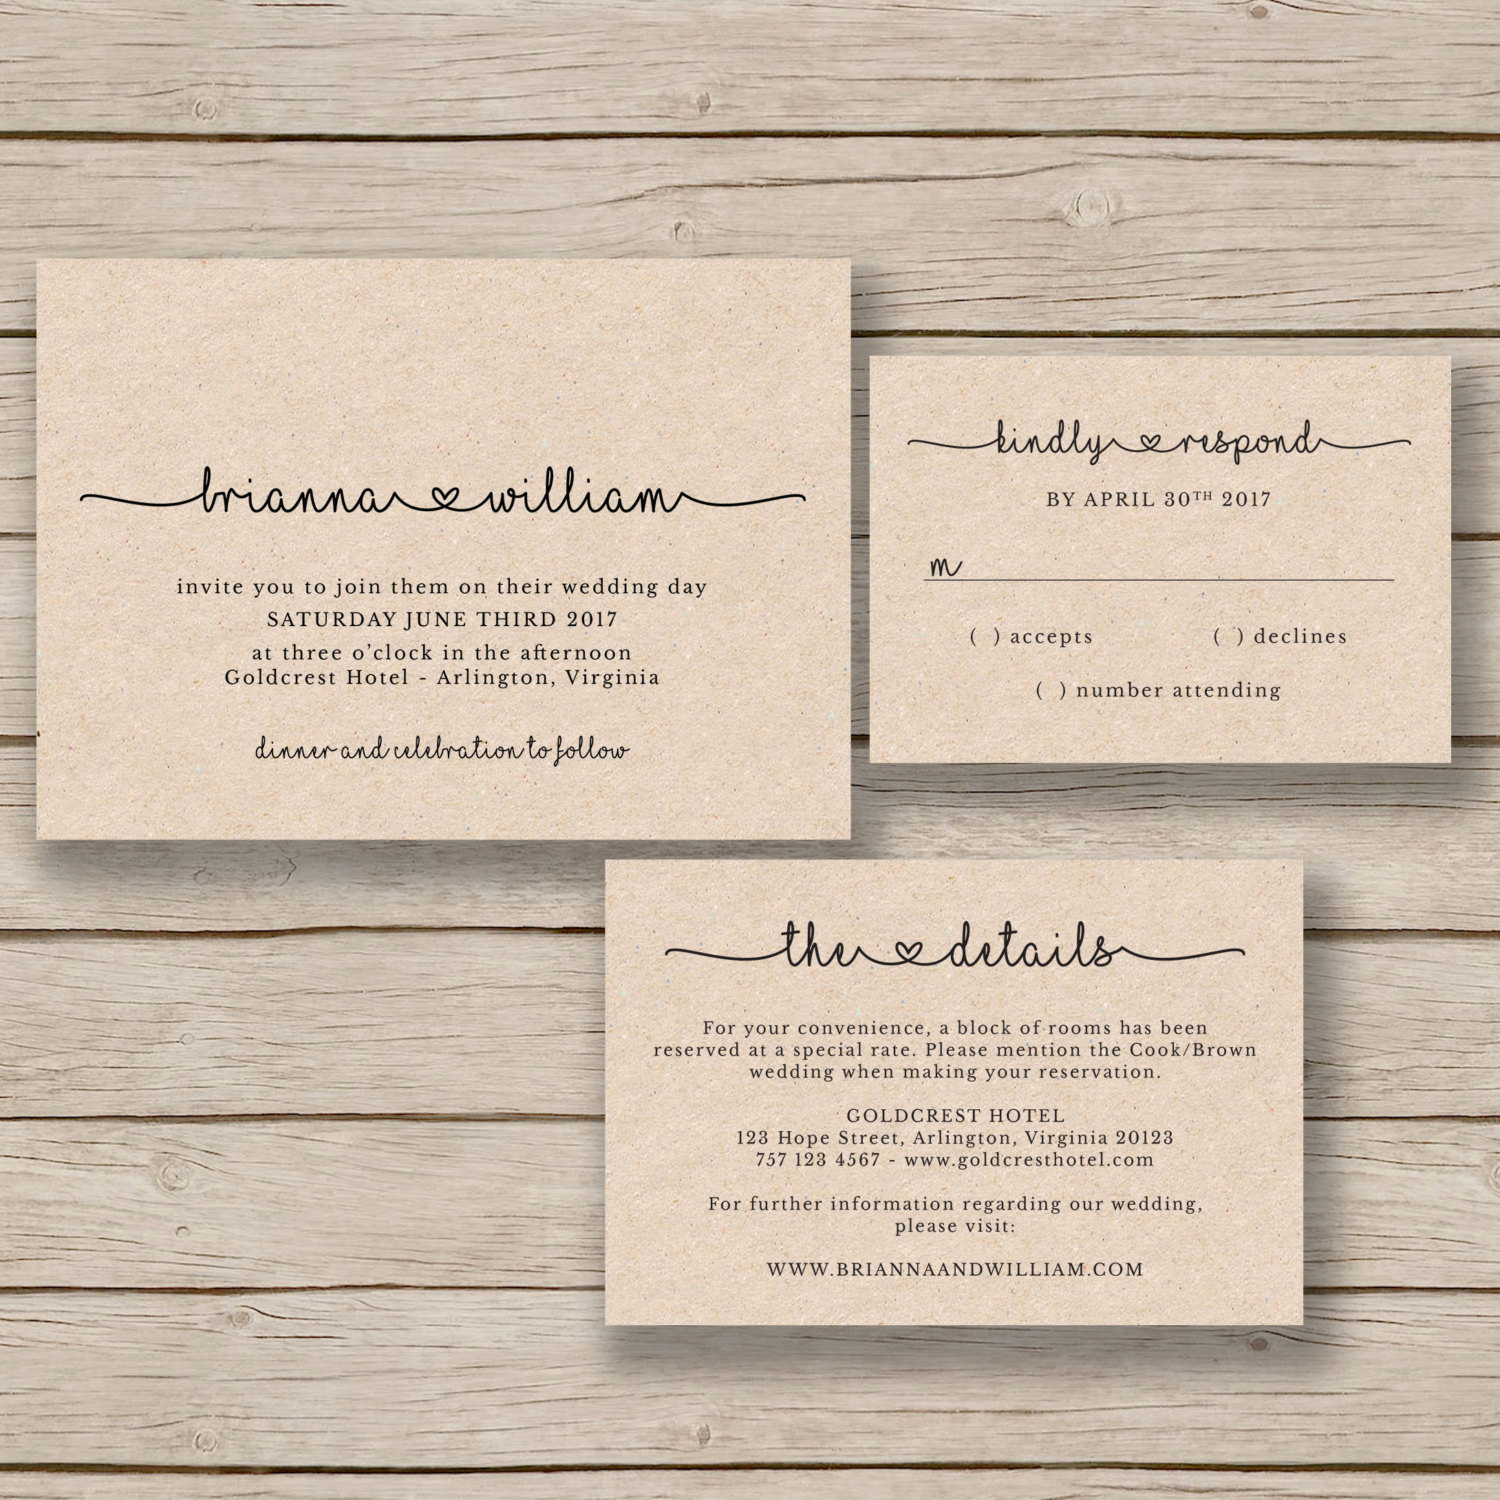 Rustic Wedding Invitation Templates Unique Wedding Invitation Template Rustic Wedding Printable